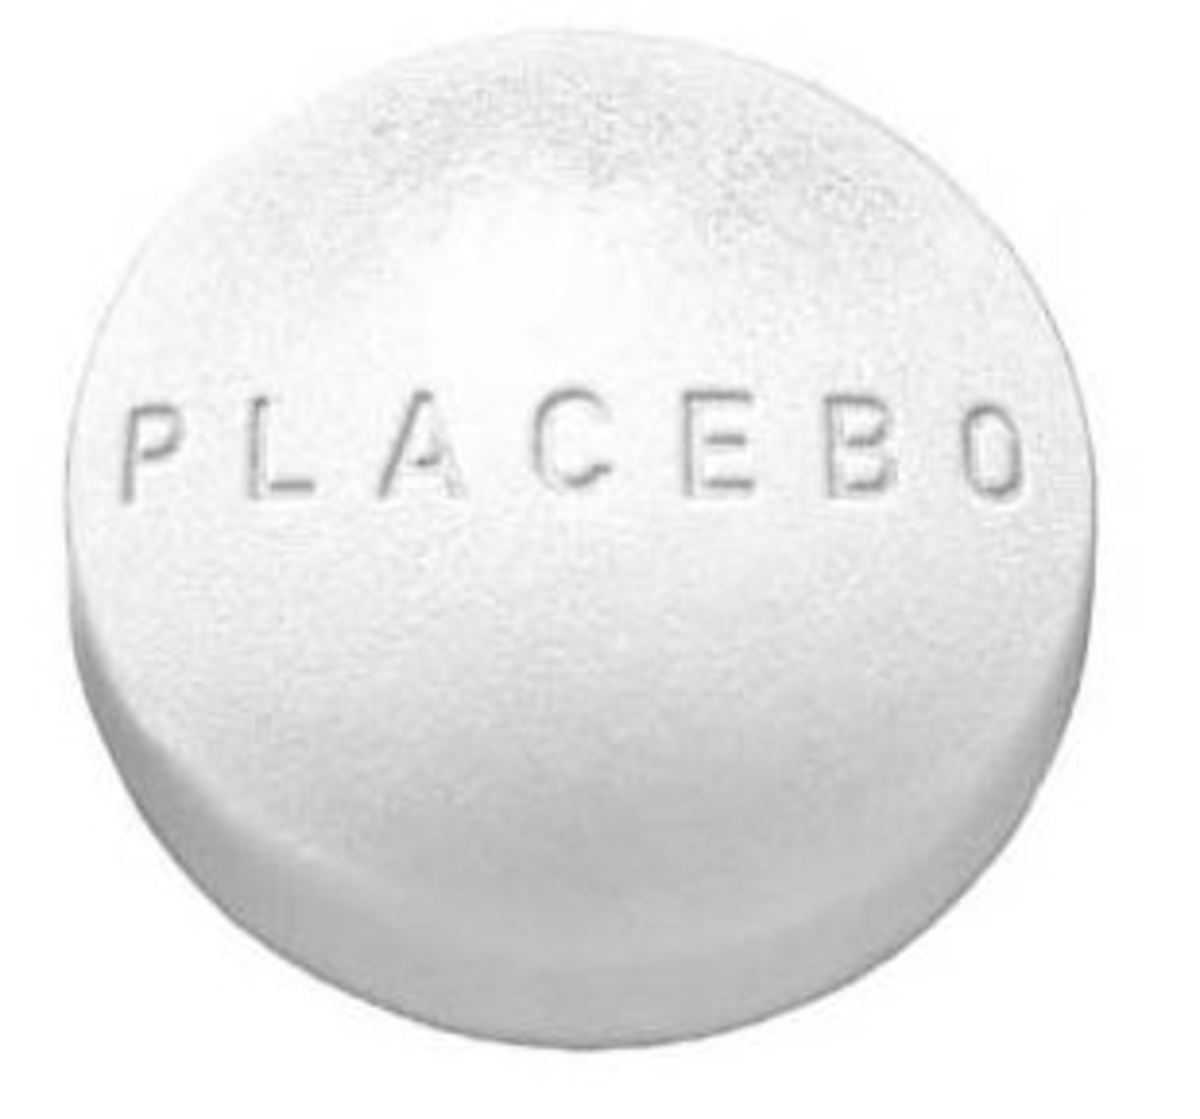 placebo-studies-do-pharmacies-dispense-placebos